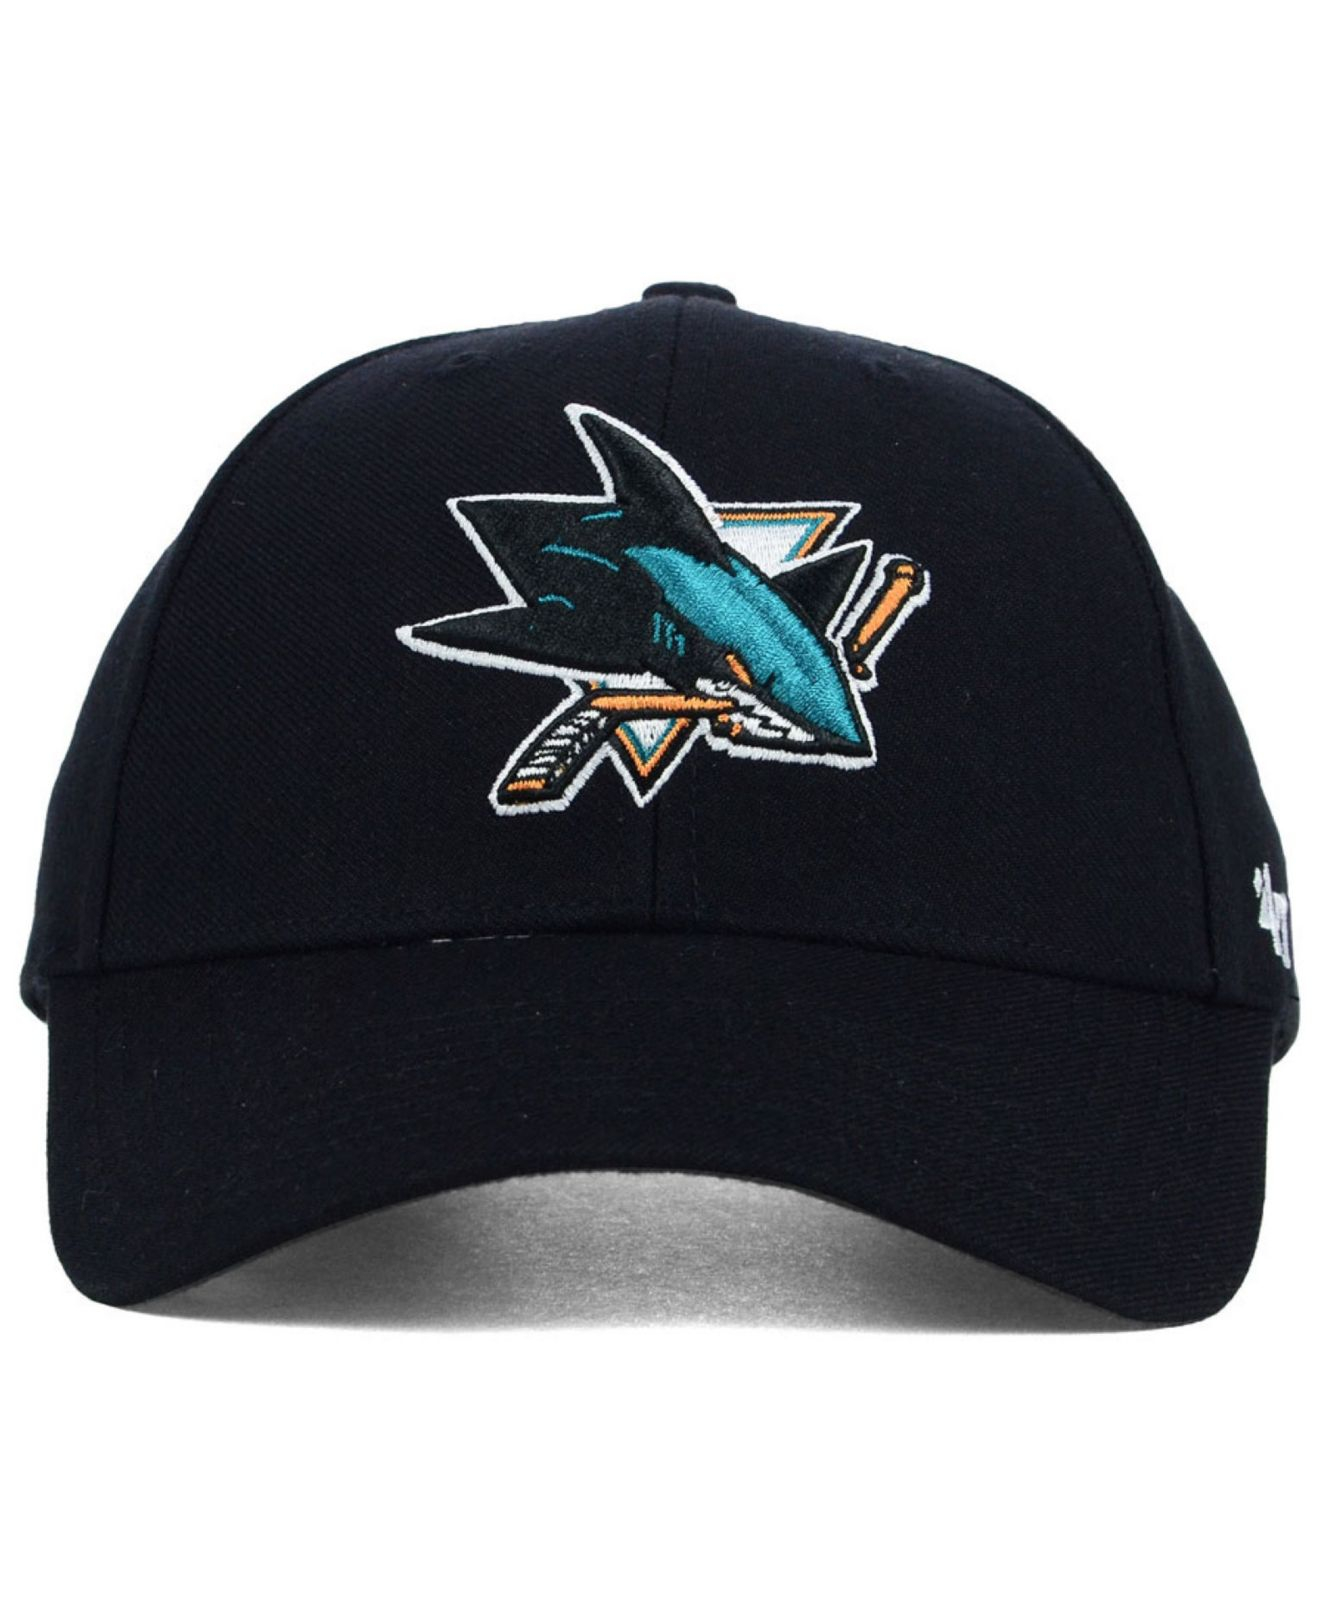 47brand San Jose Sharks Mvp Curved Adjustable Cap Fanartikel